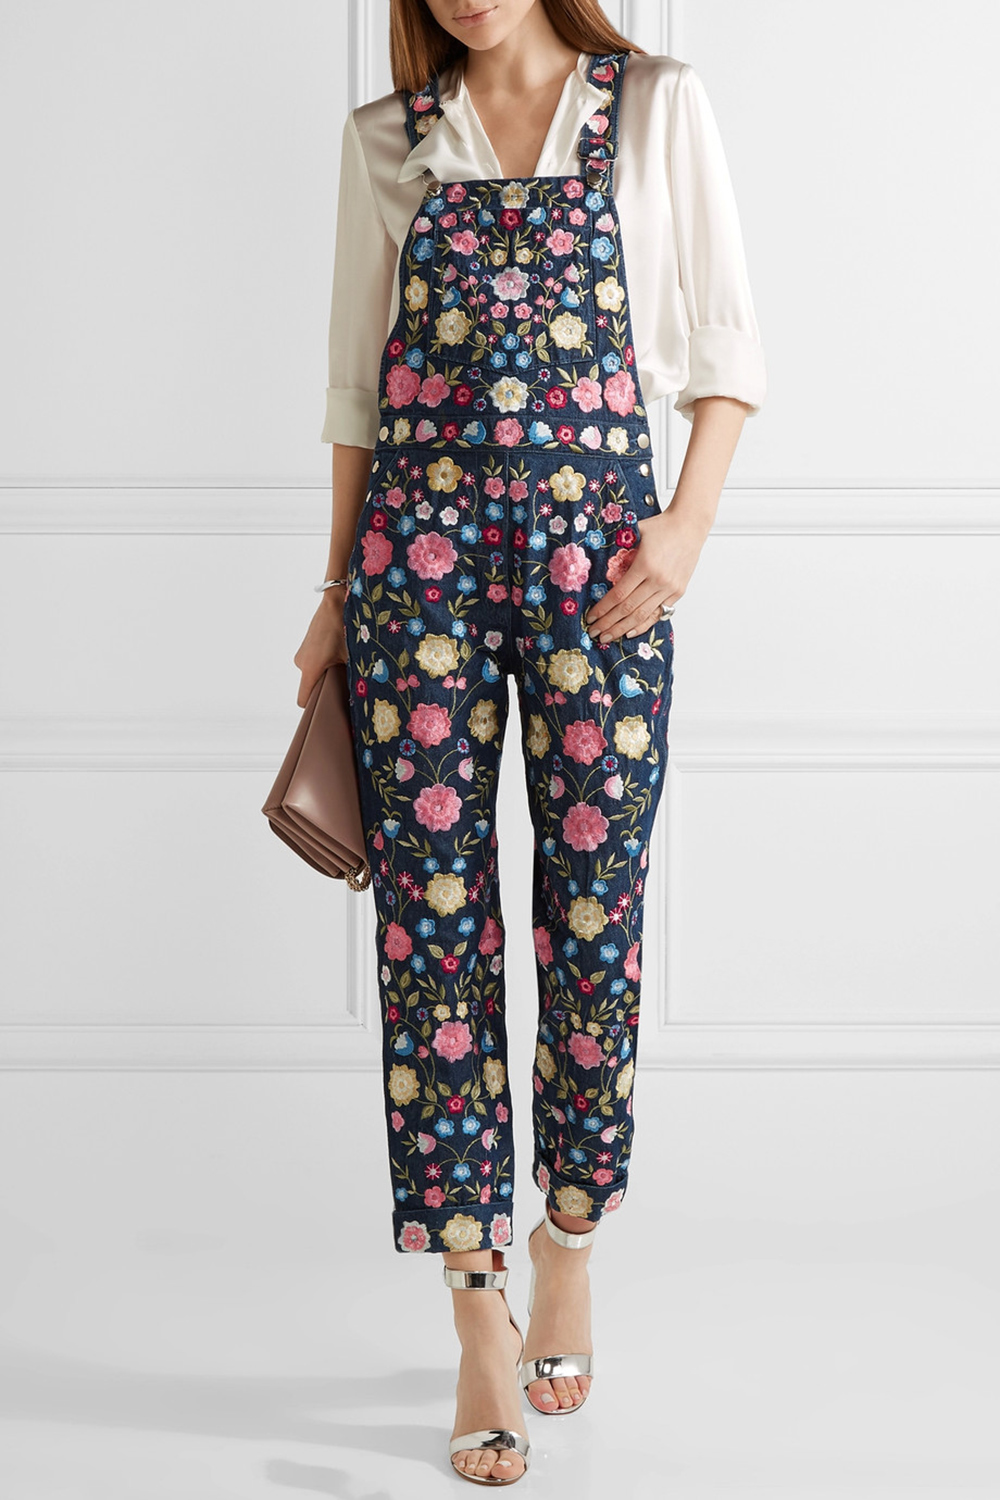 97637b5a2be06 How To Wear Dungarees